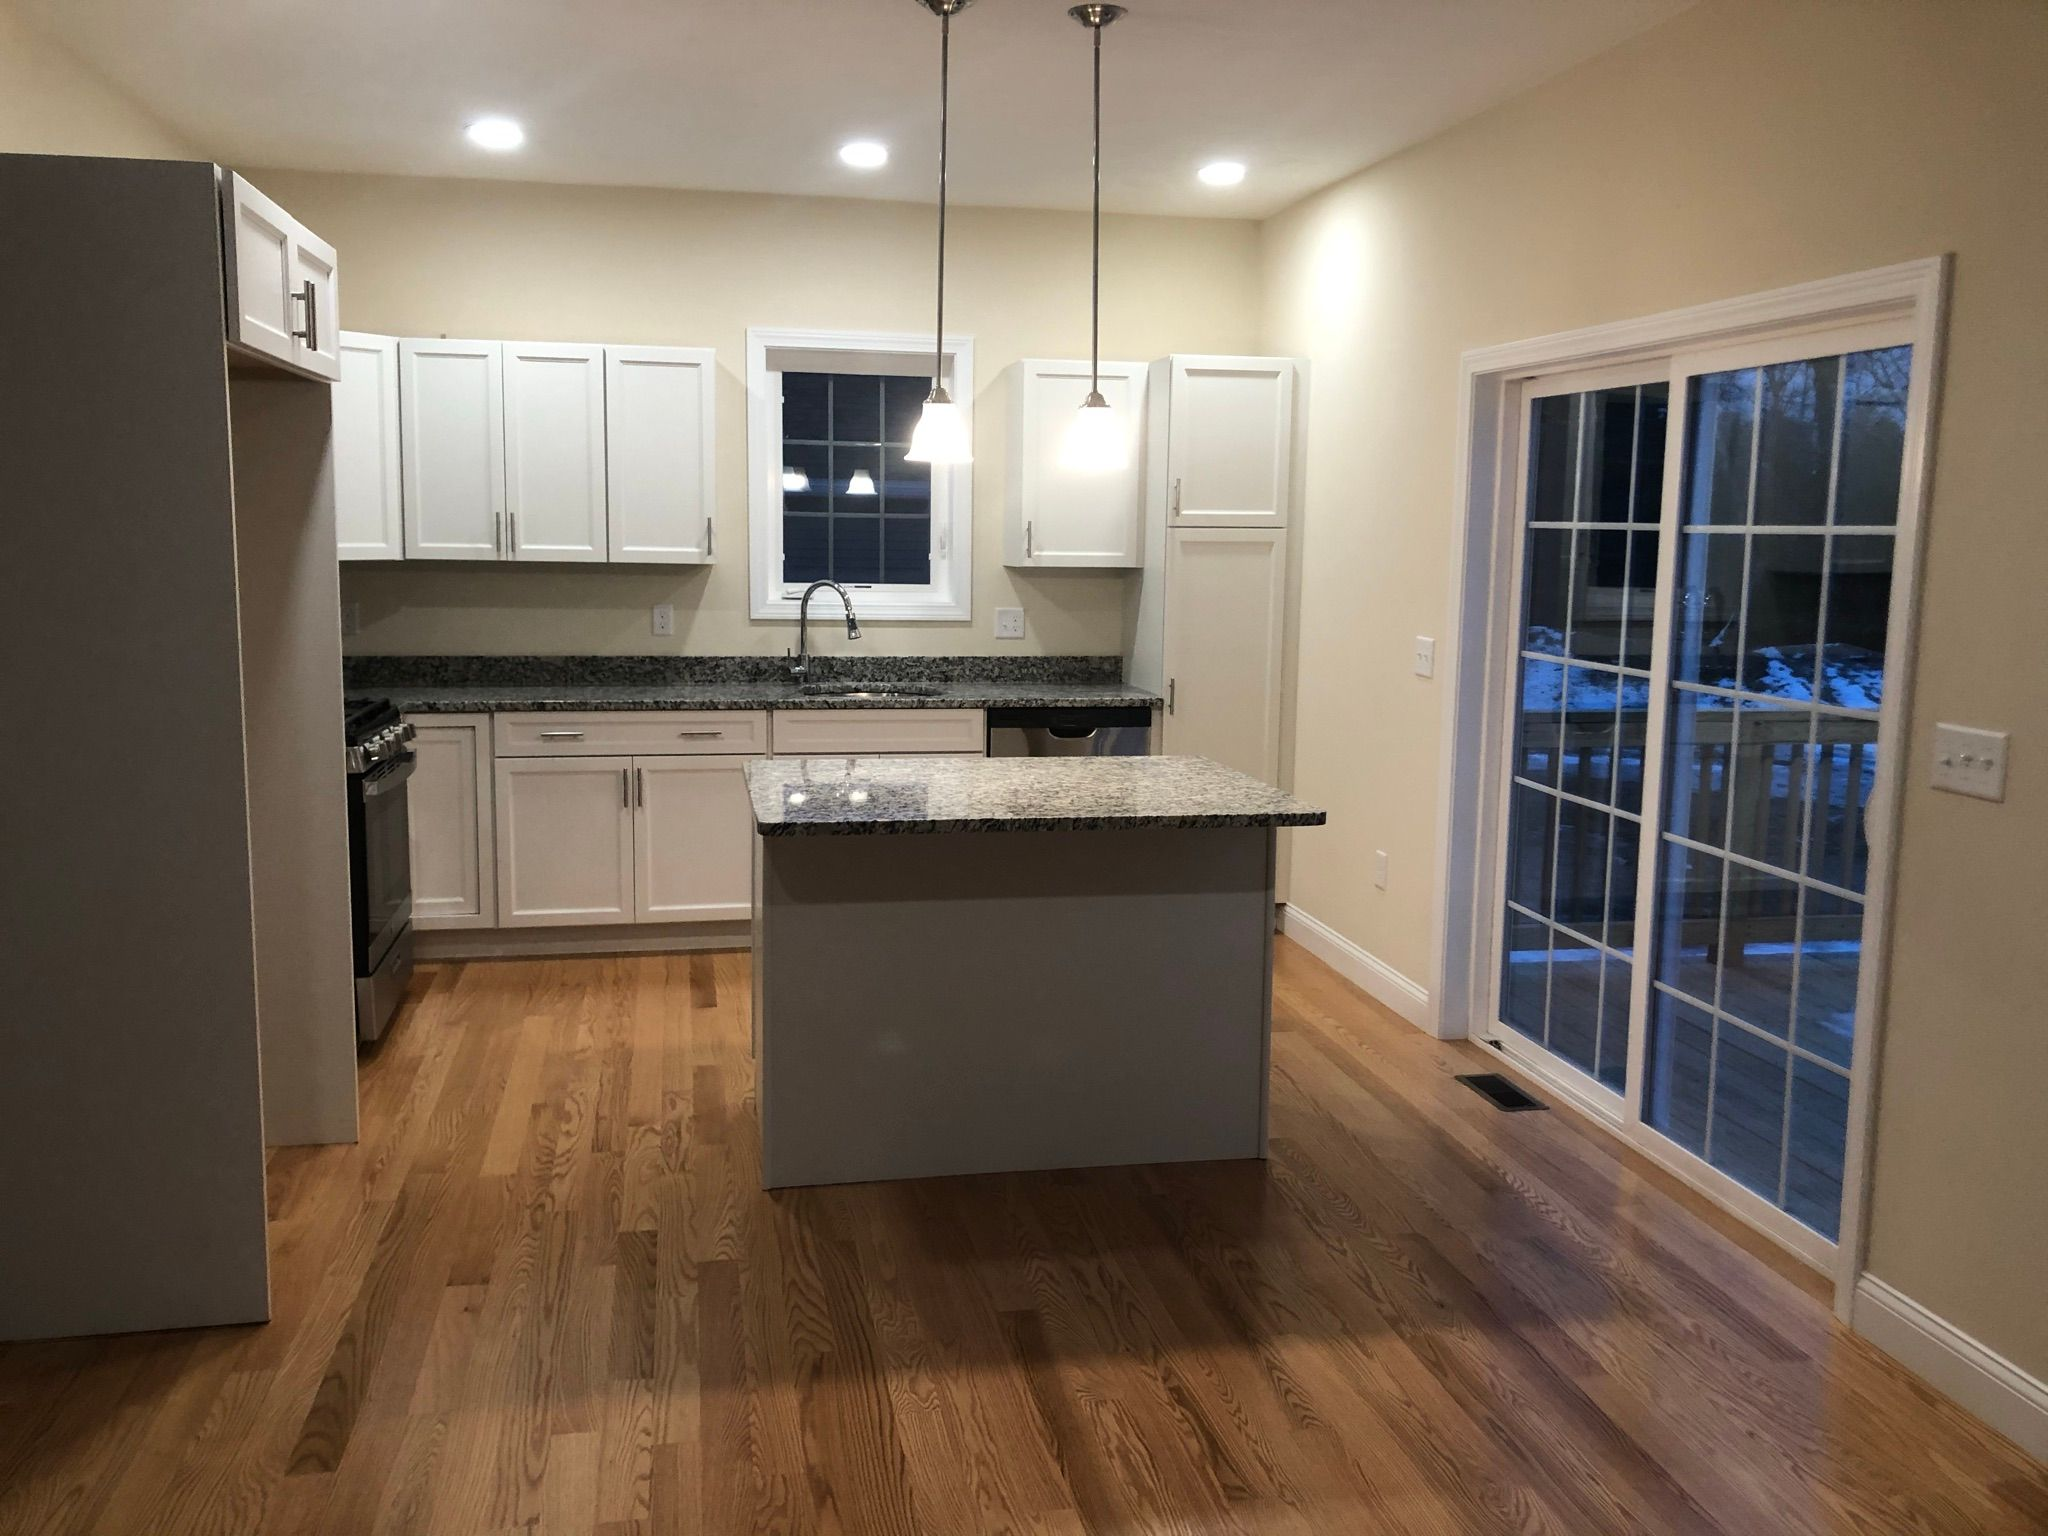 Kitchen featured in The Victoria May II By Fafard Real Estate in Boston, MA